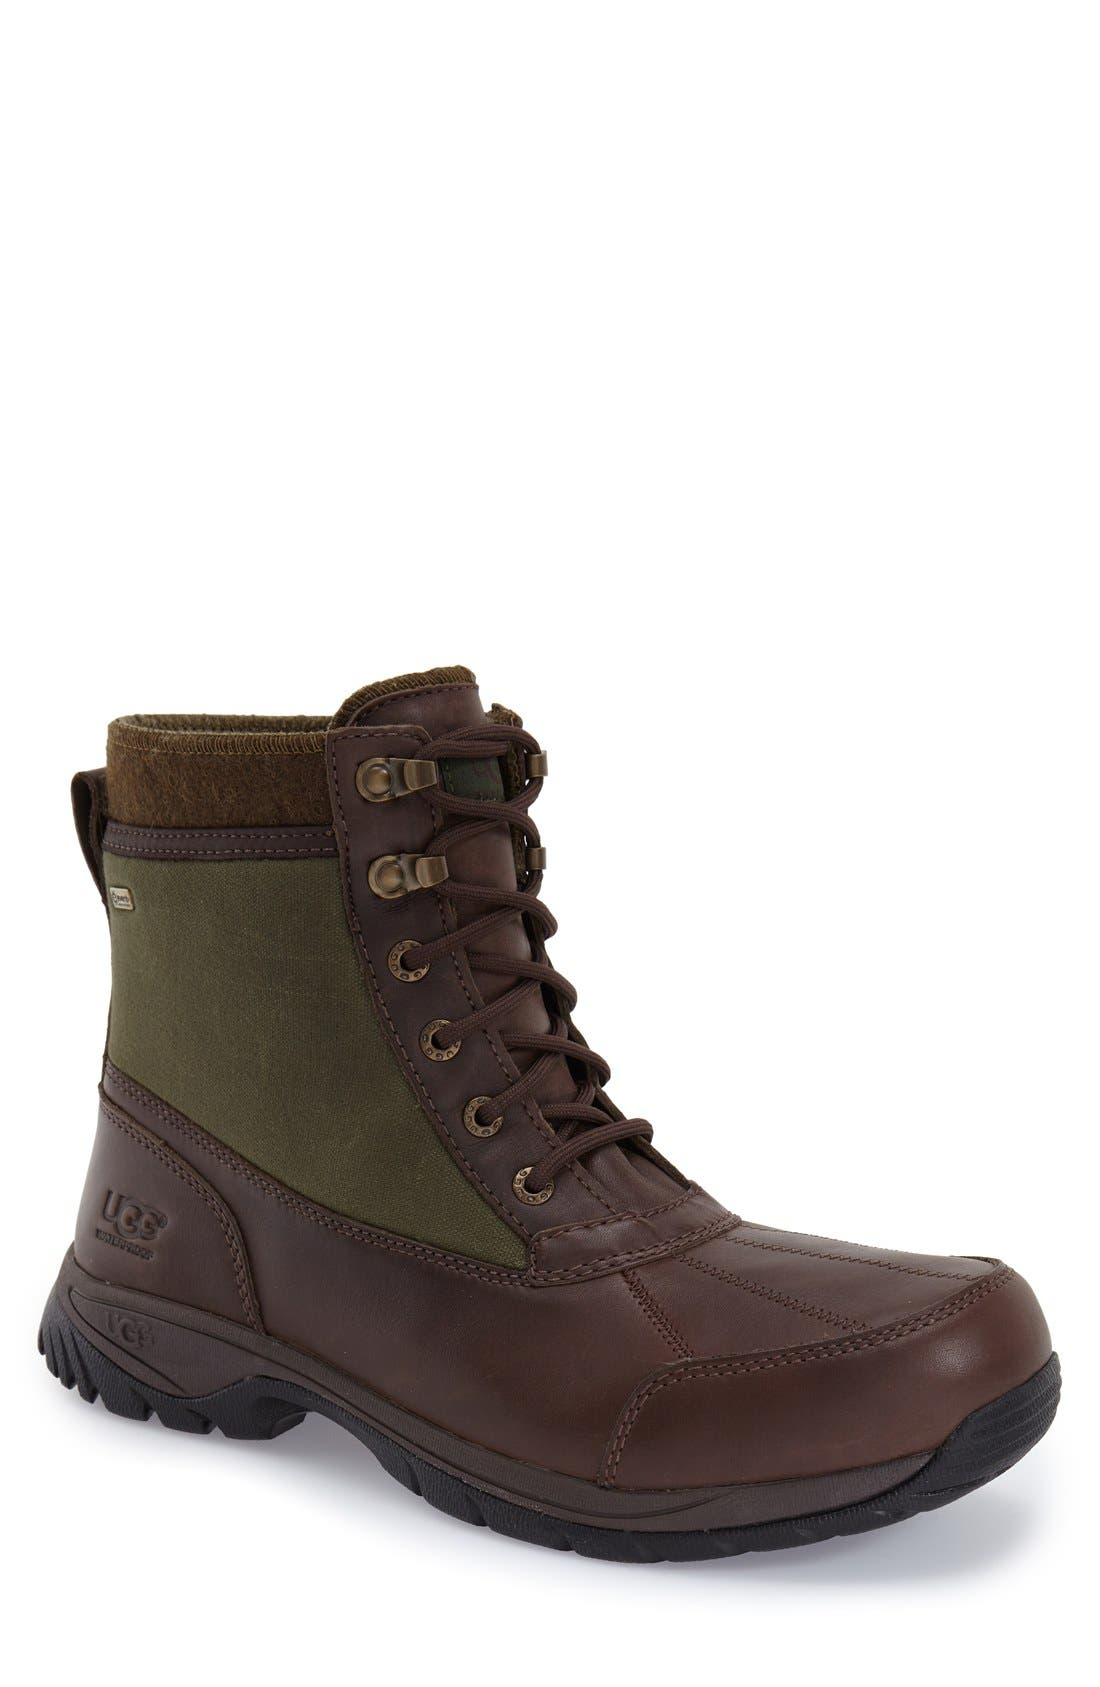 Main Image - UGG® 'Eaglin' Waterproof Snow Boot